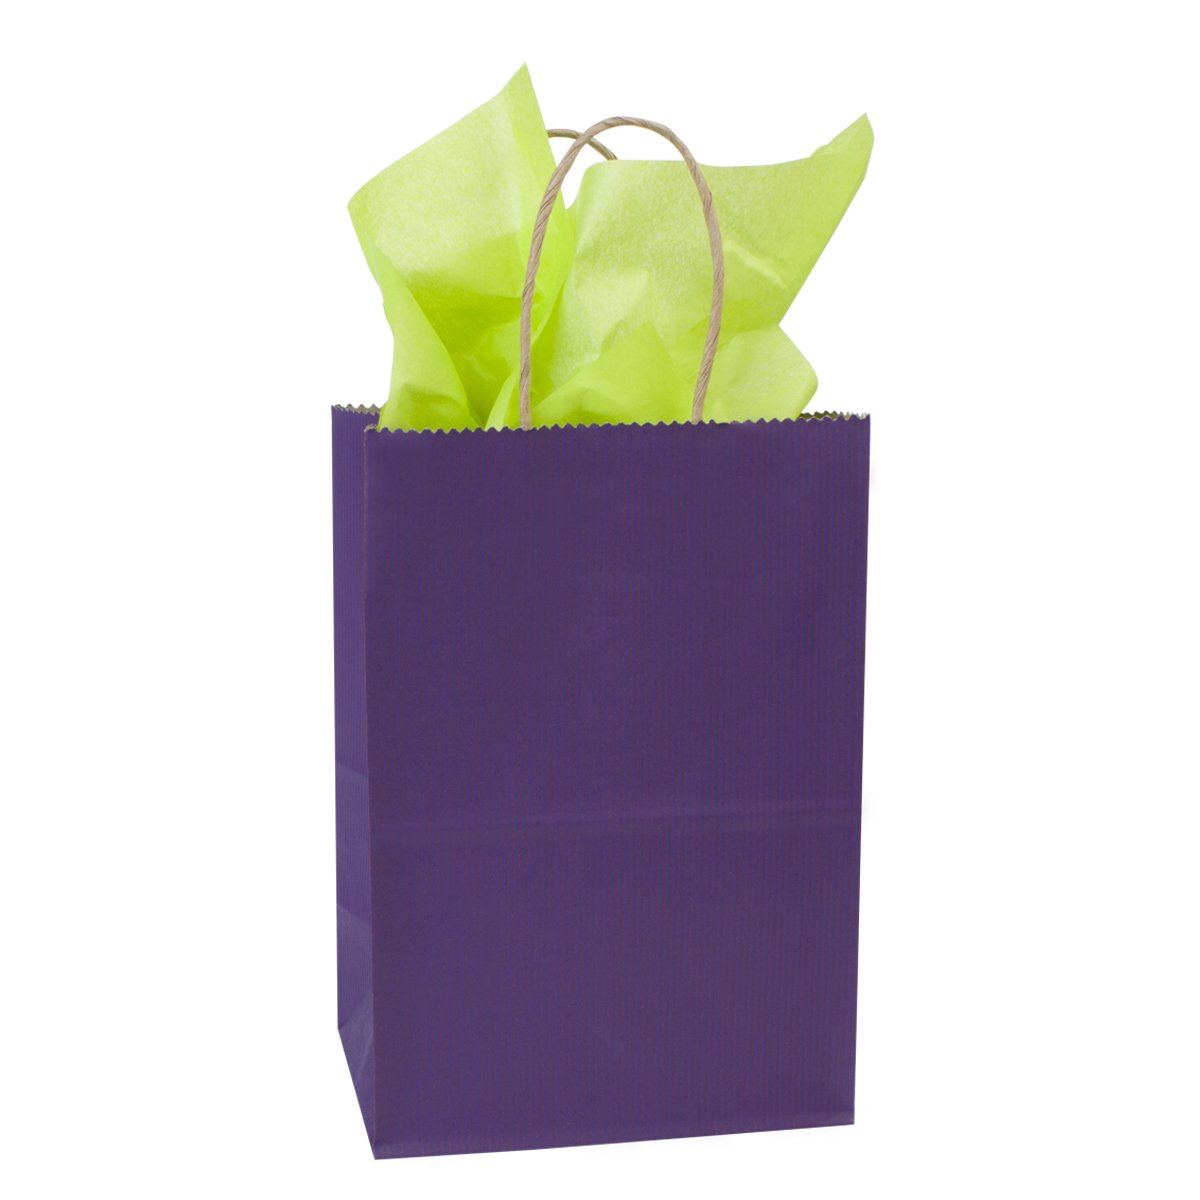 Amazon.com: bagdream bolsas de papel Kraft 100pcs 5.25